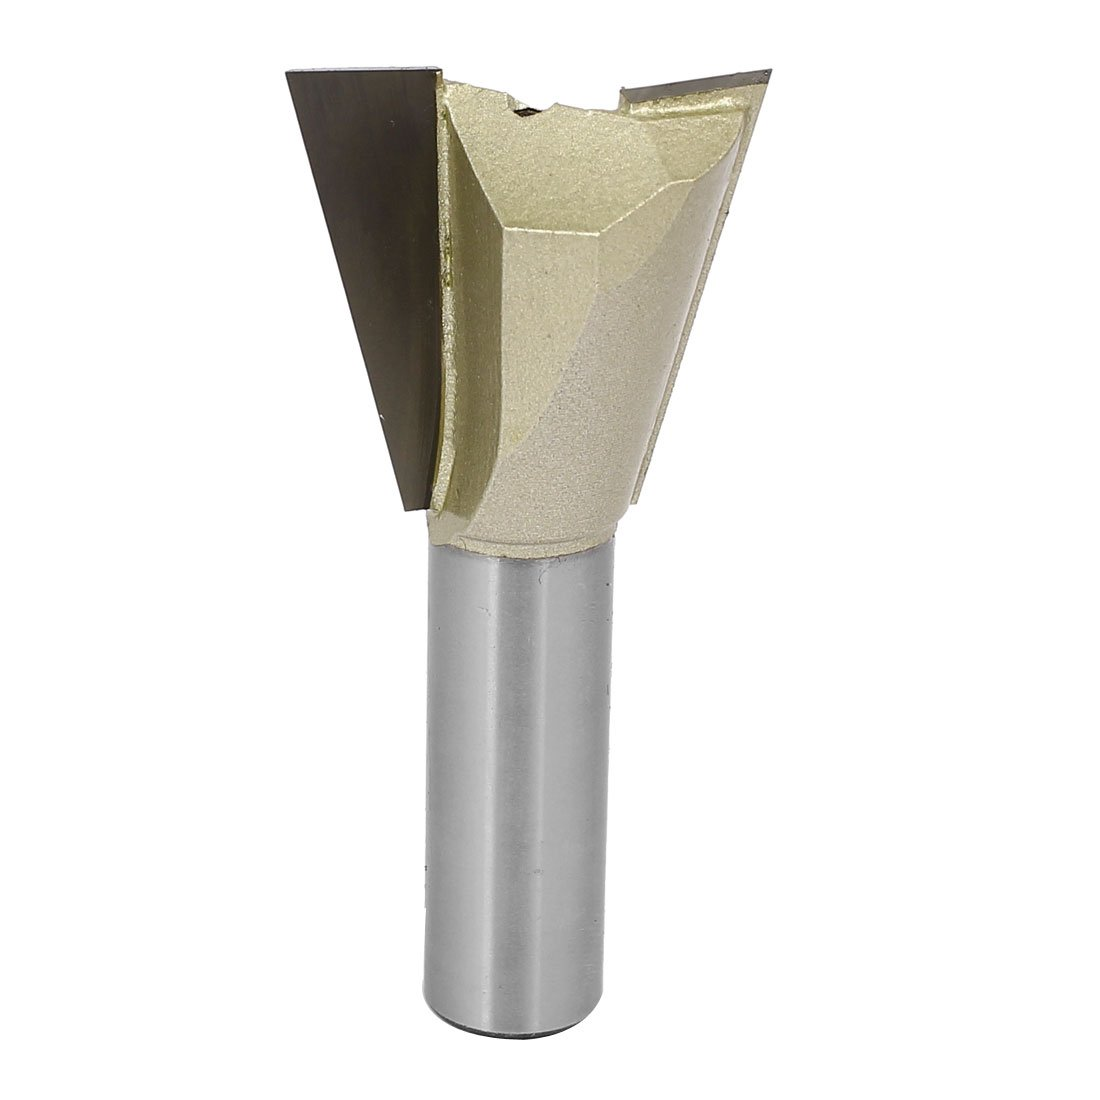 uxcell 1/2-inch Round Shank 1-1/4-inch Cutting Dia Woodwork Dovetail Router Bit